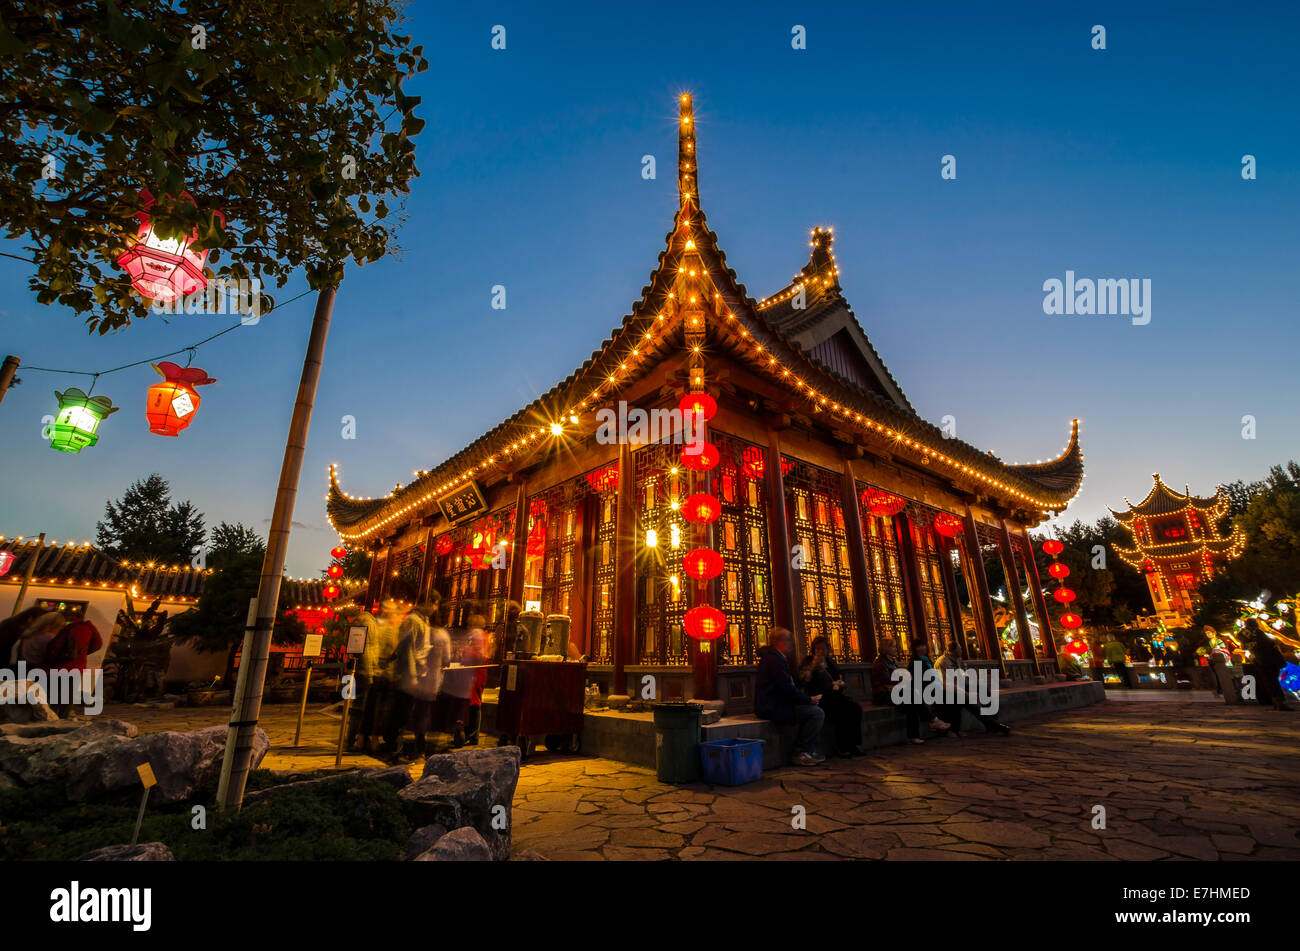 Chinese Lanterns Garden Stock Photos & Chinese Lanterns Garden Stock ...